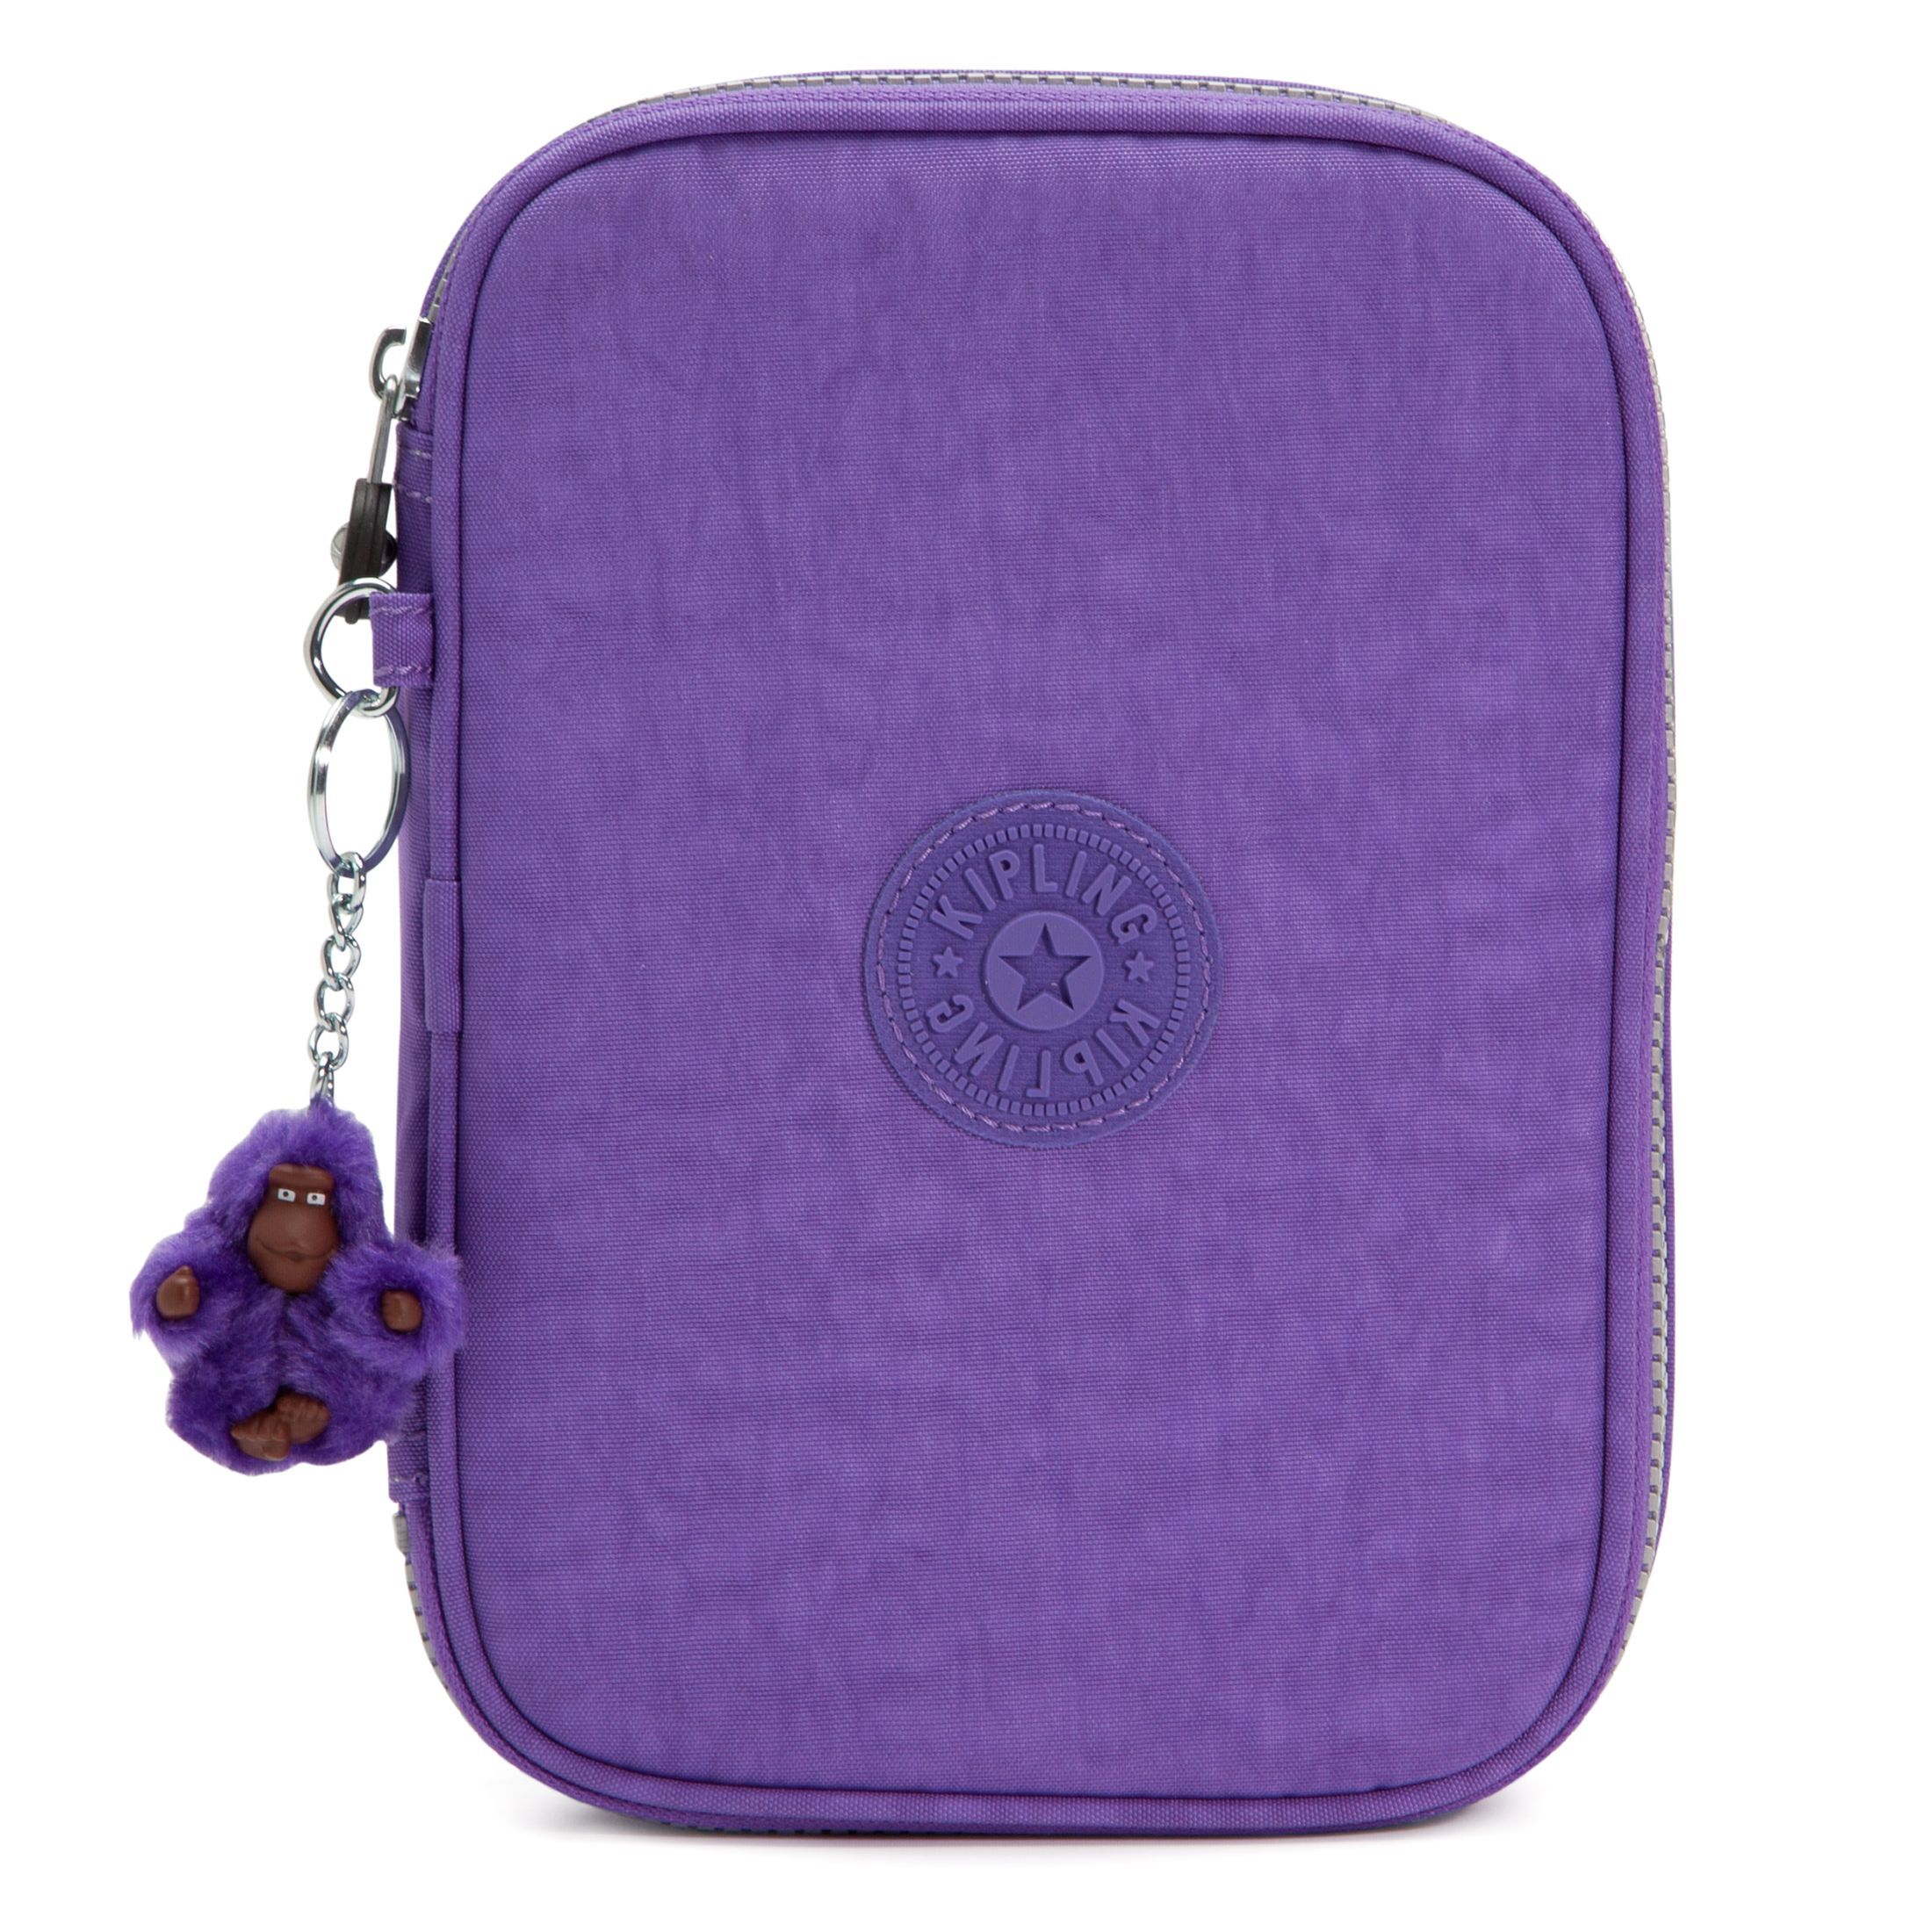 6c7875300 Kipling-USA pen/pencil case in many colors $44 | Volta às aulas ...